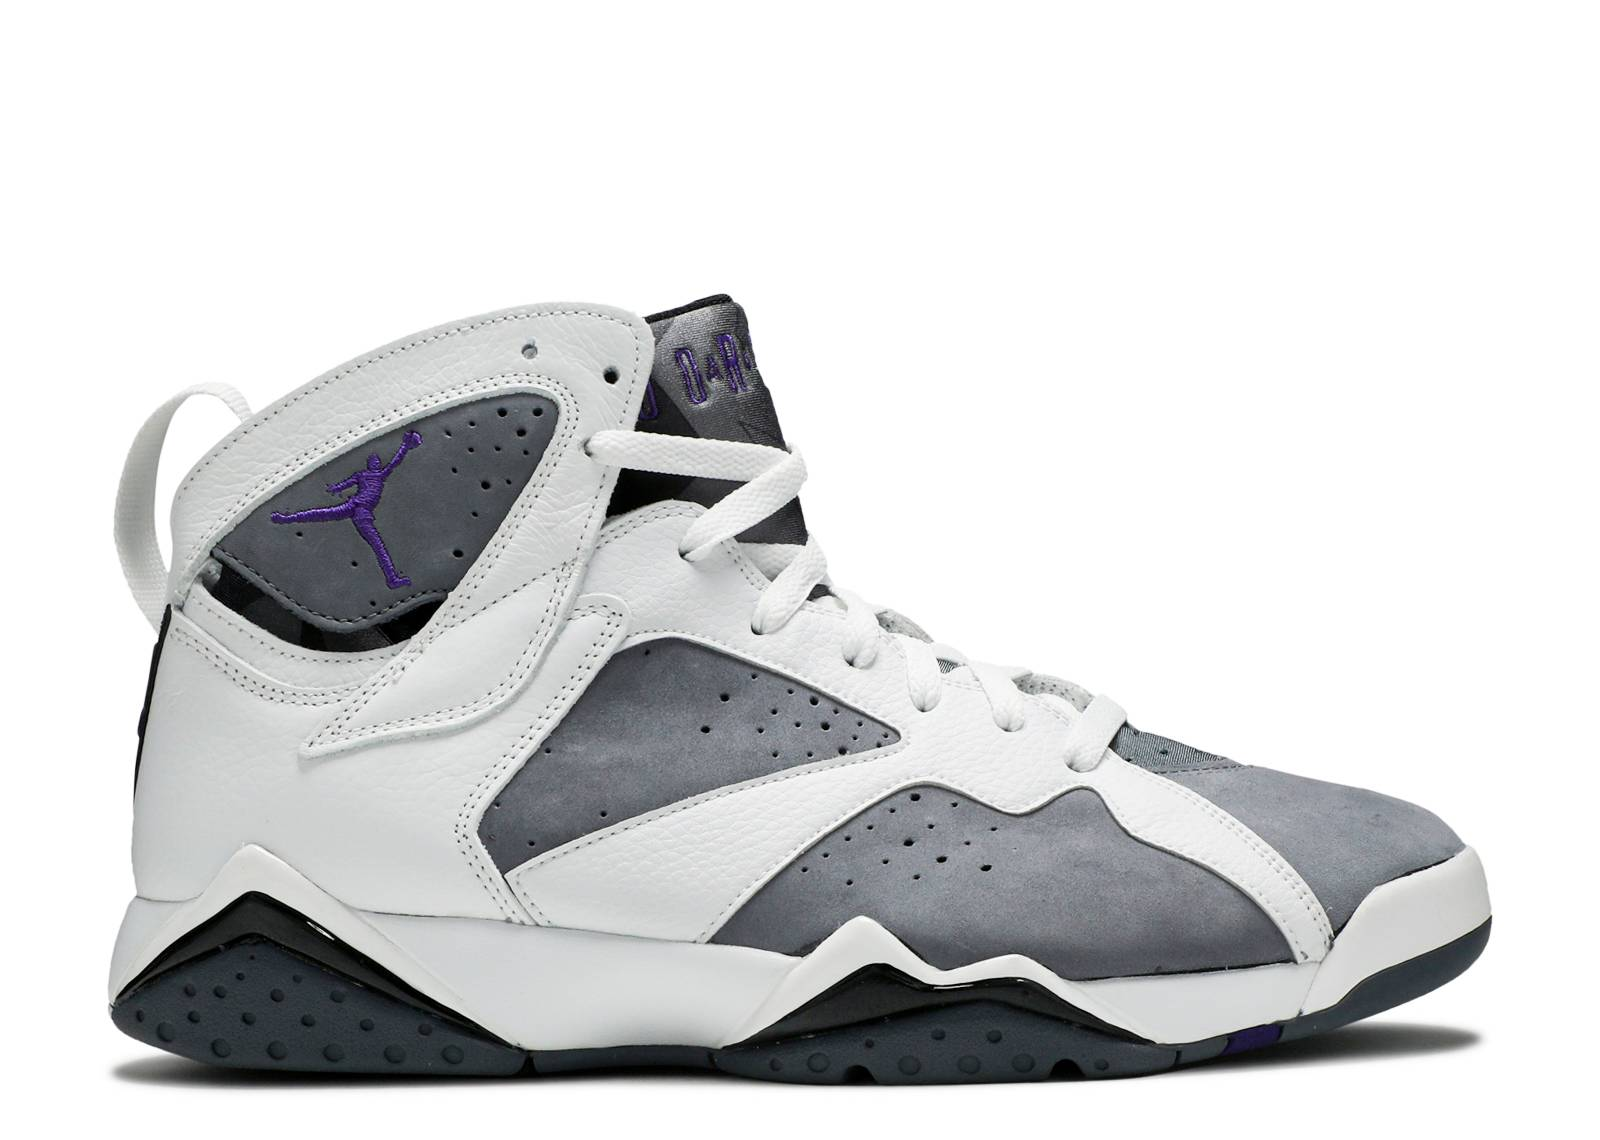 8ded1f67deb Air Jordan 7 Retro - Air Jordan - 304775 151 - white varsity purple ...